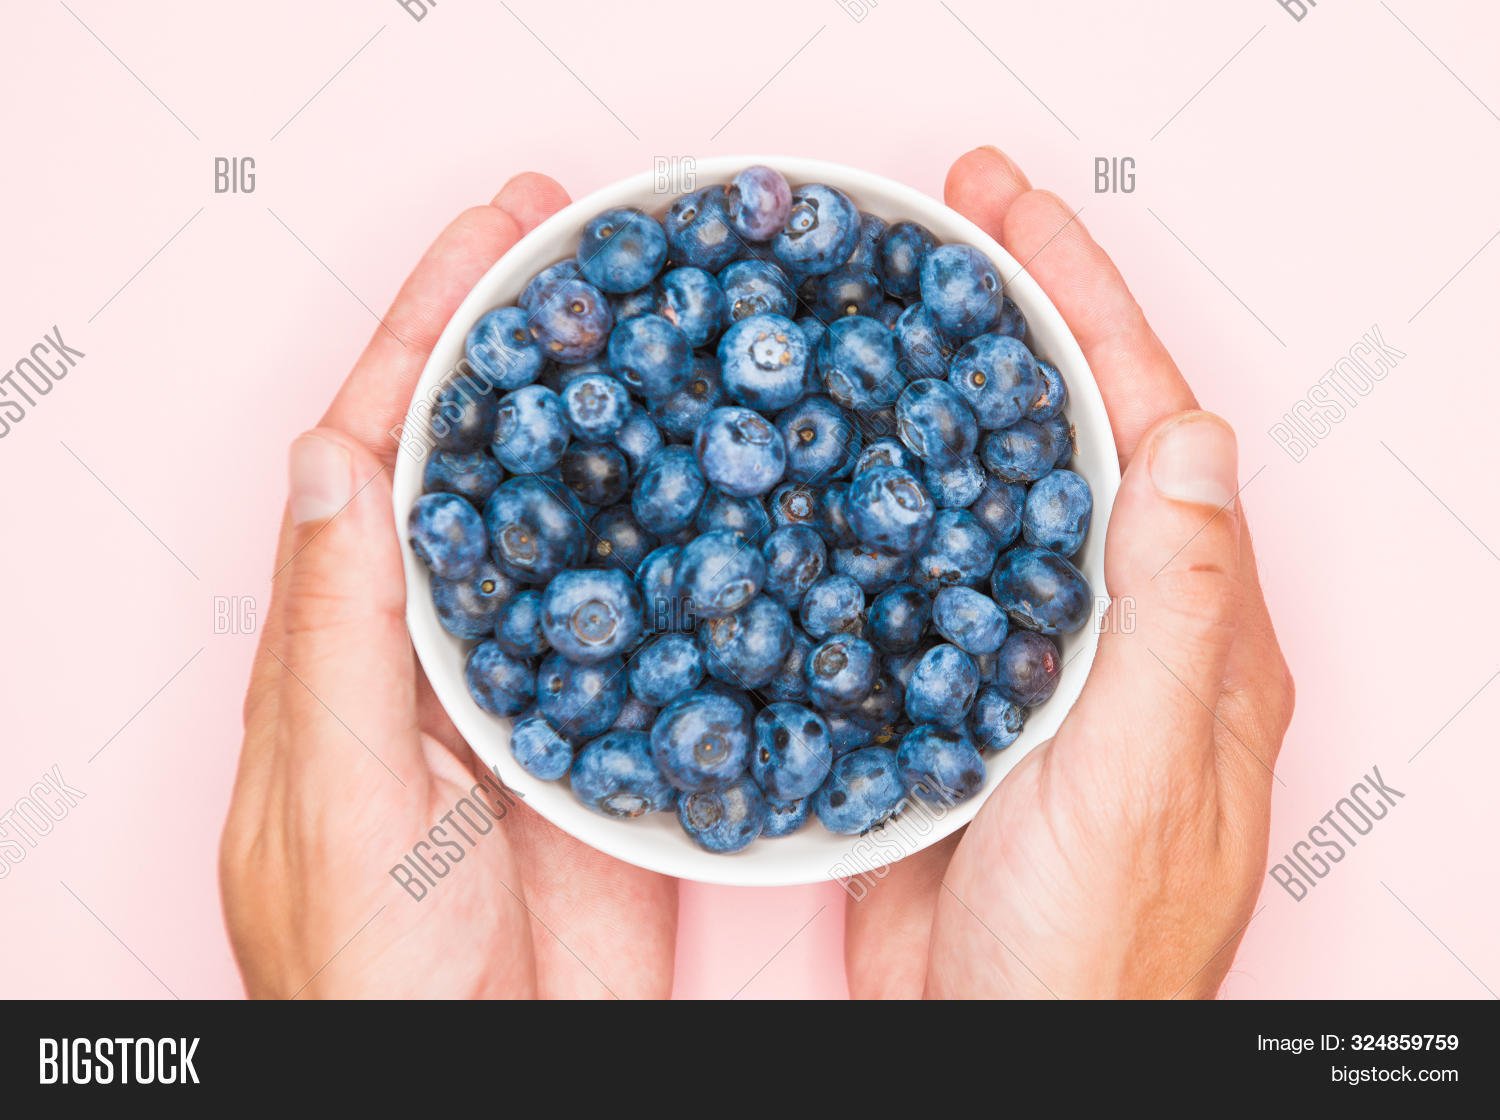 The Usefulness Of Blueberries. Closeup Of Blueberry Berries With Hands In A Light Dish Background. P